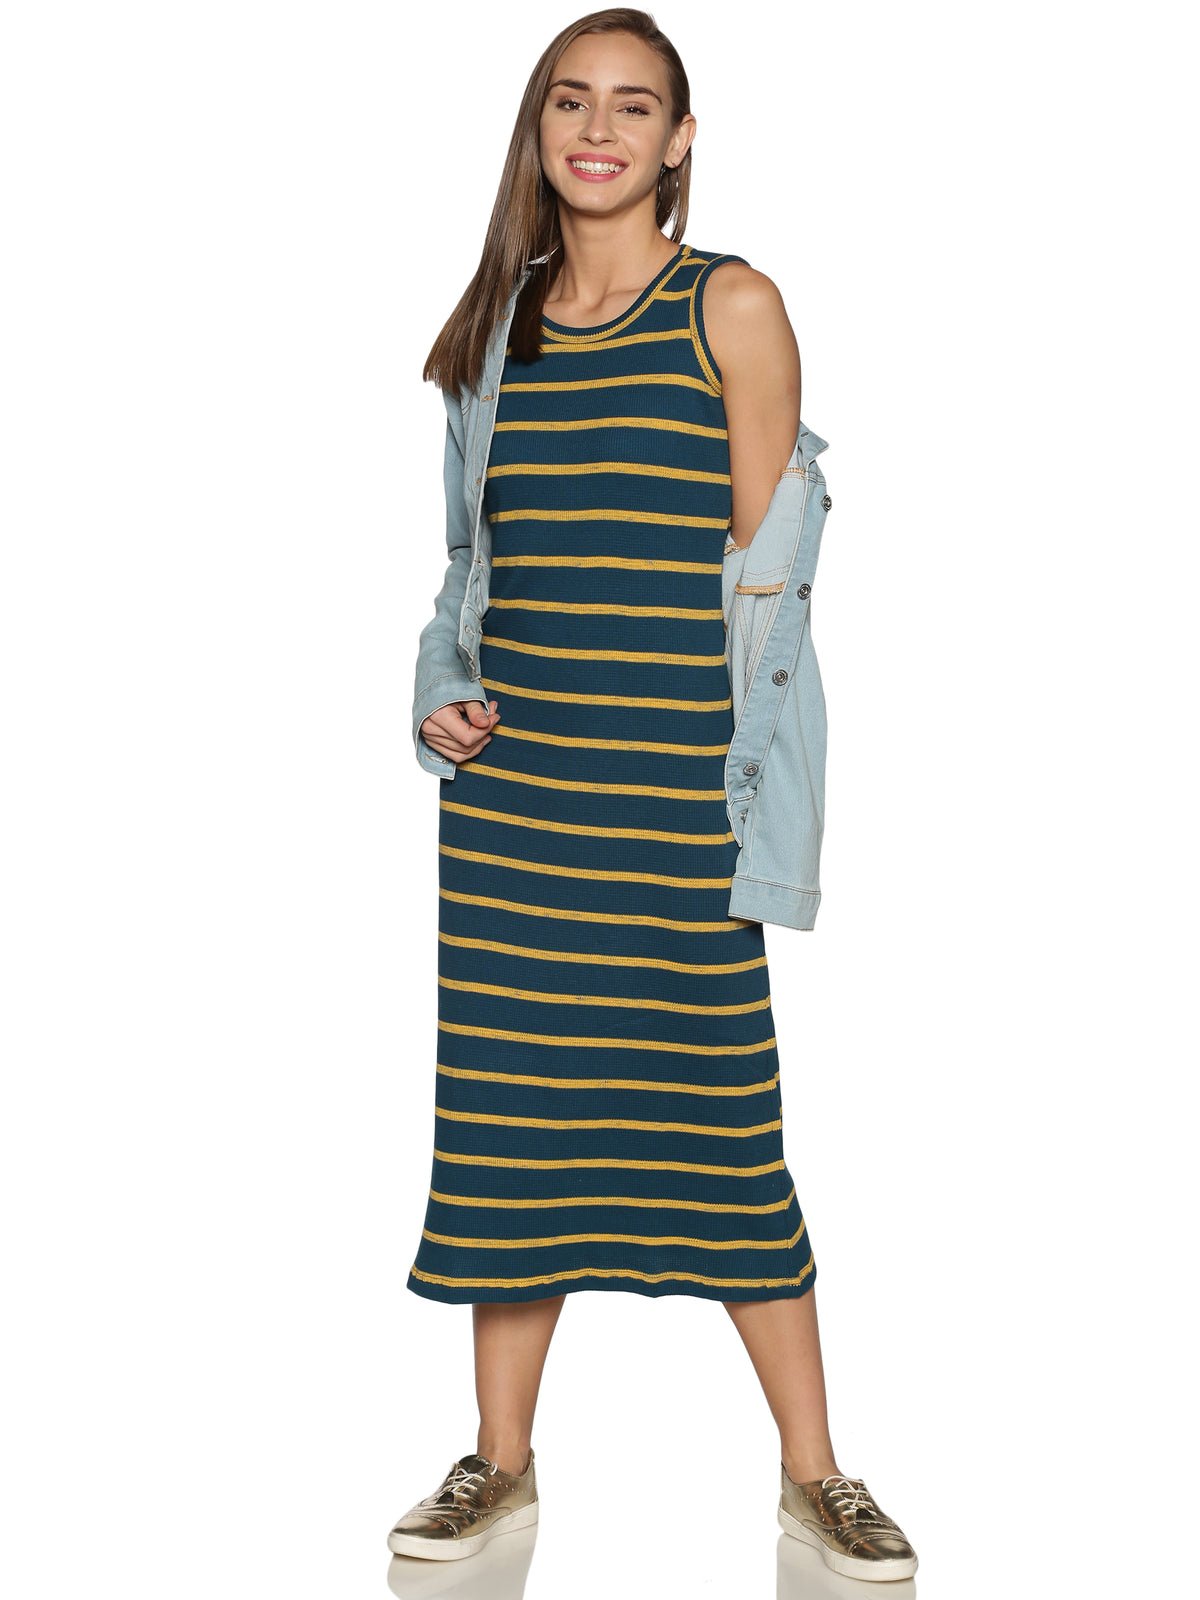 Teal Sleeveless Ribbed Knit Dress